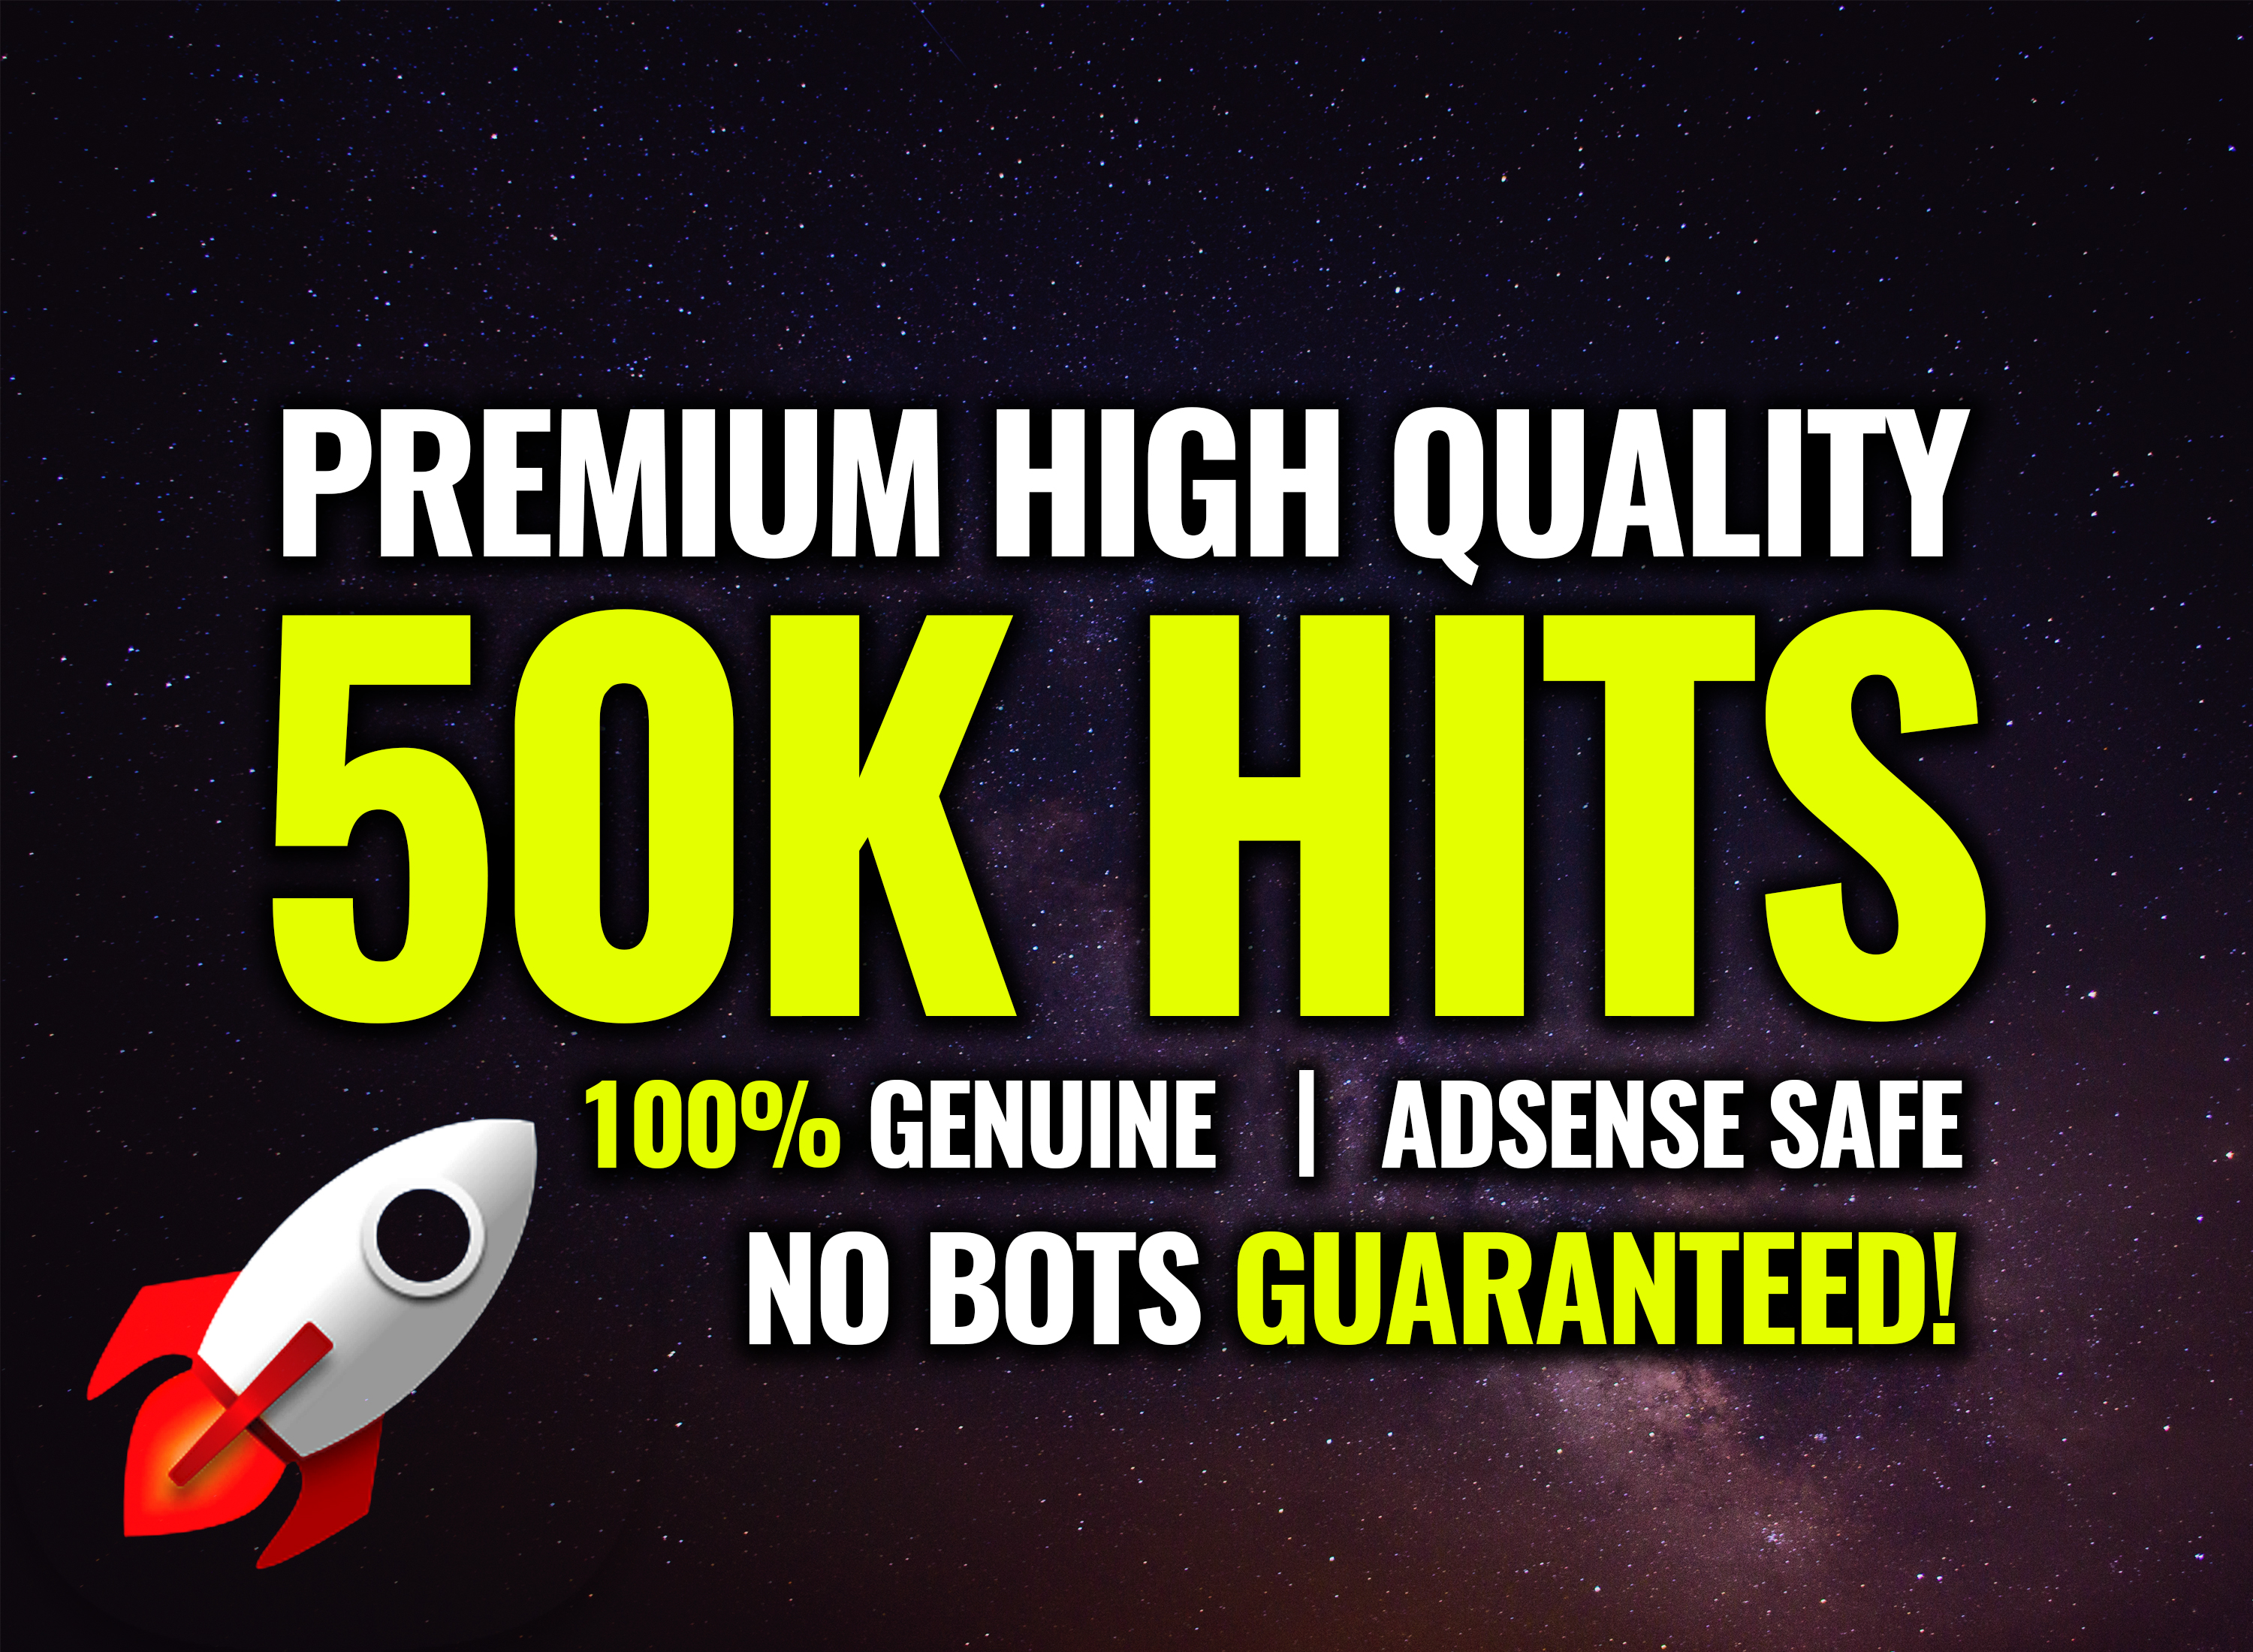 Skyrocket Your Website With 50k Safe and Genuine Real Human Traffic Organically